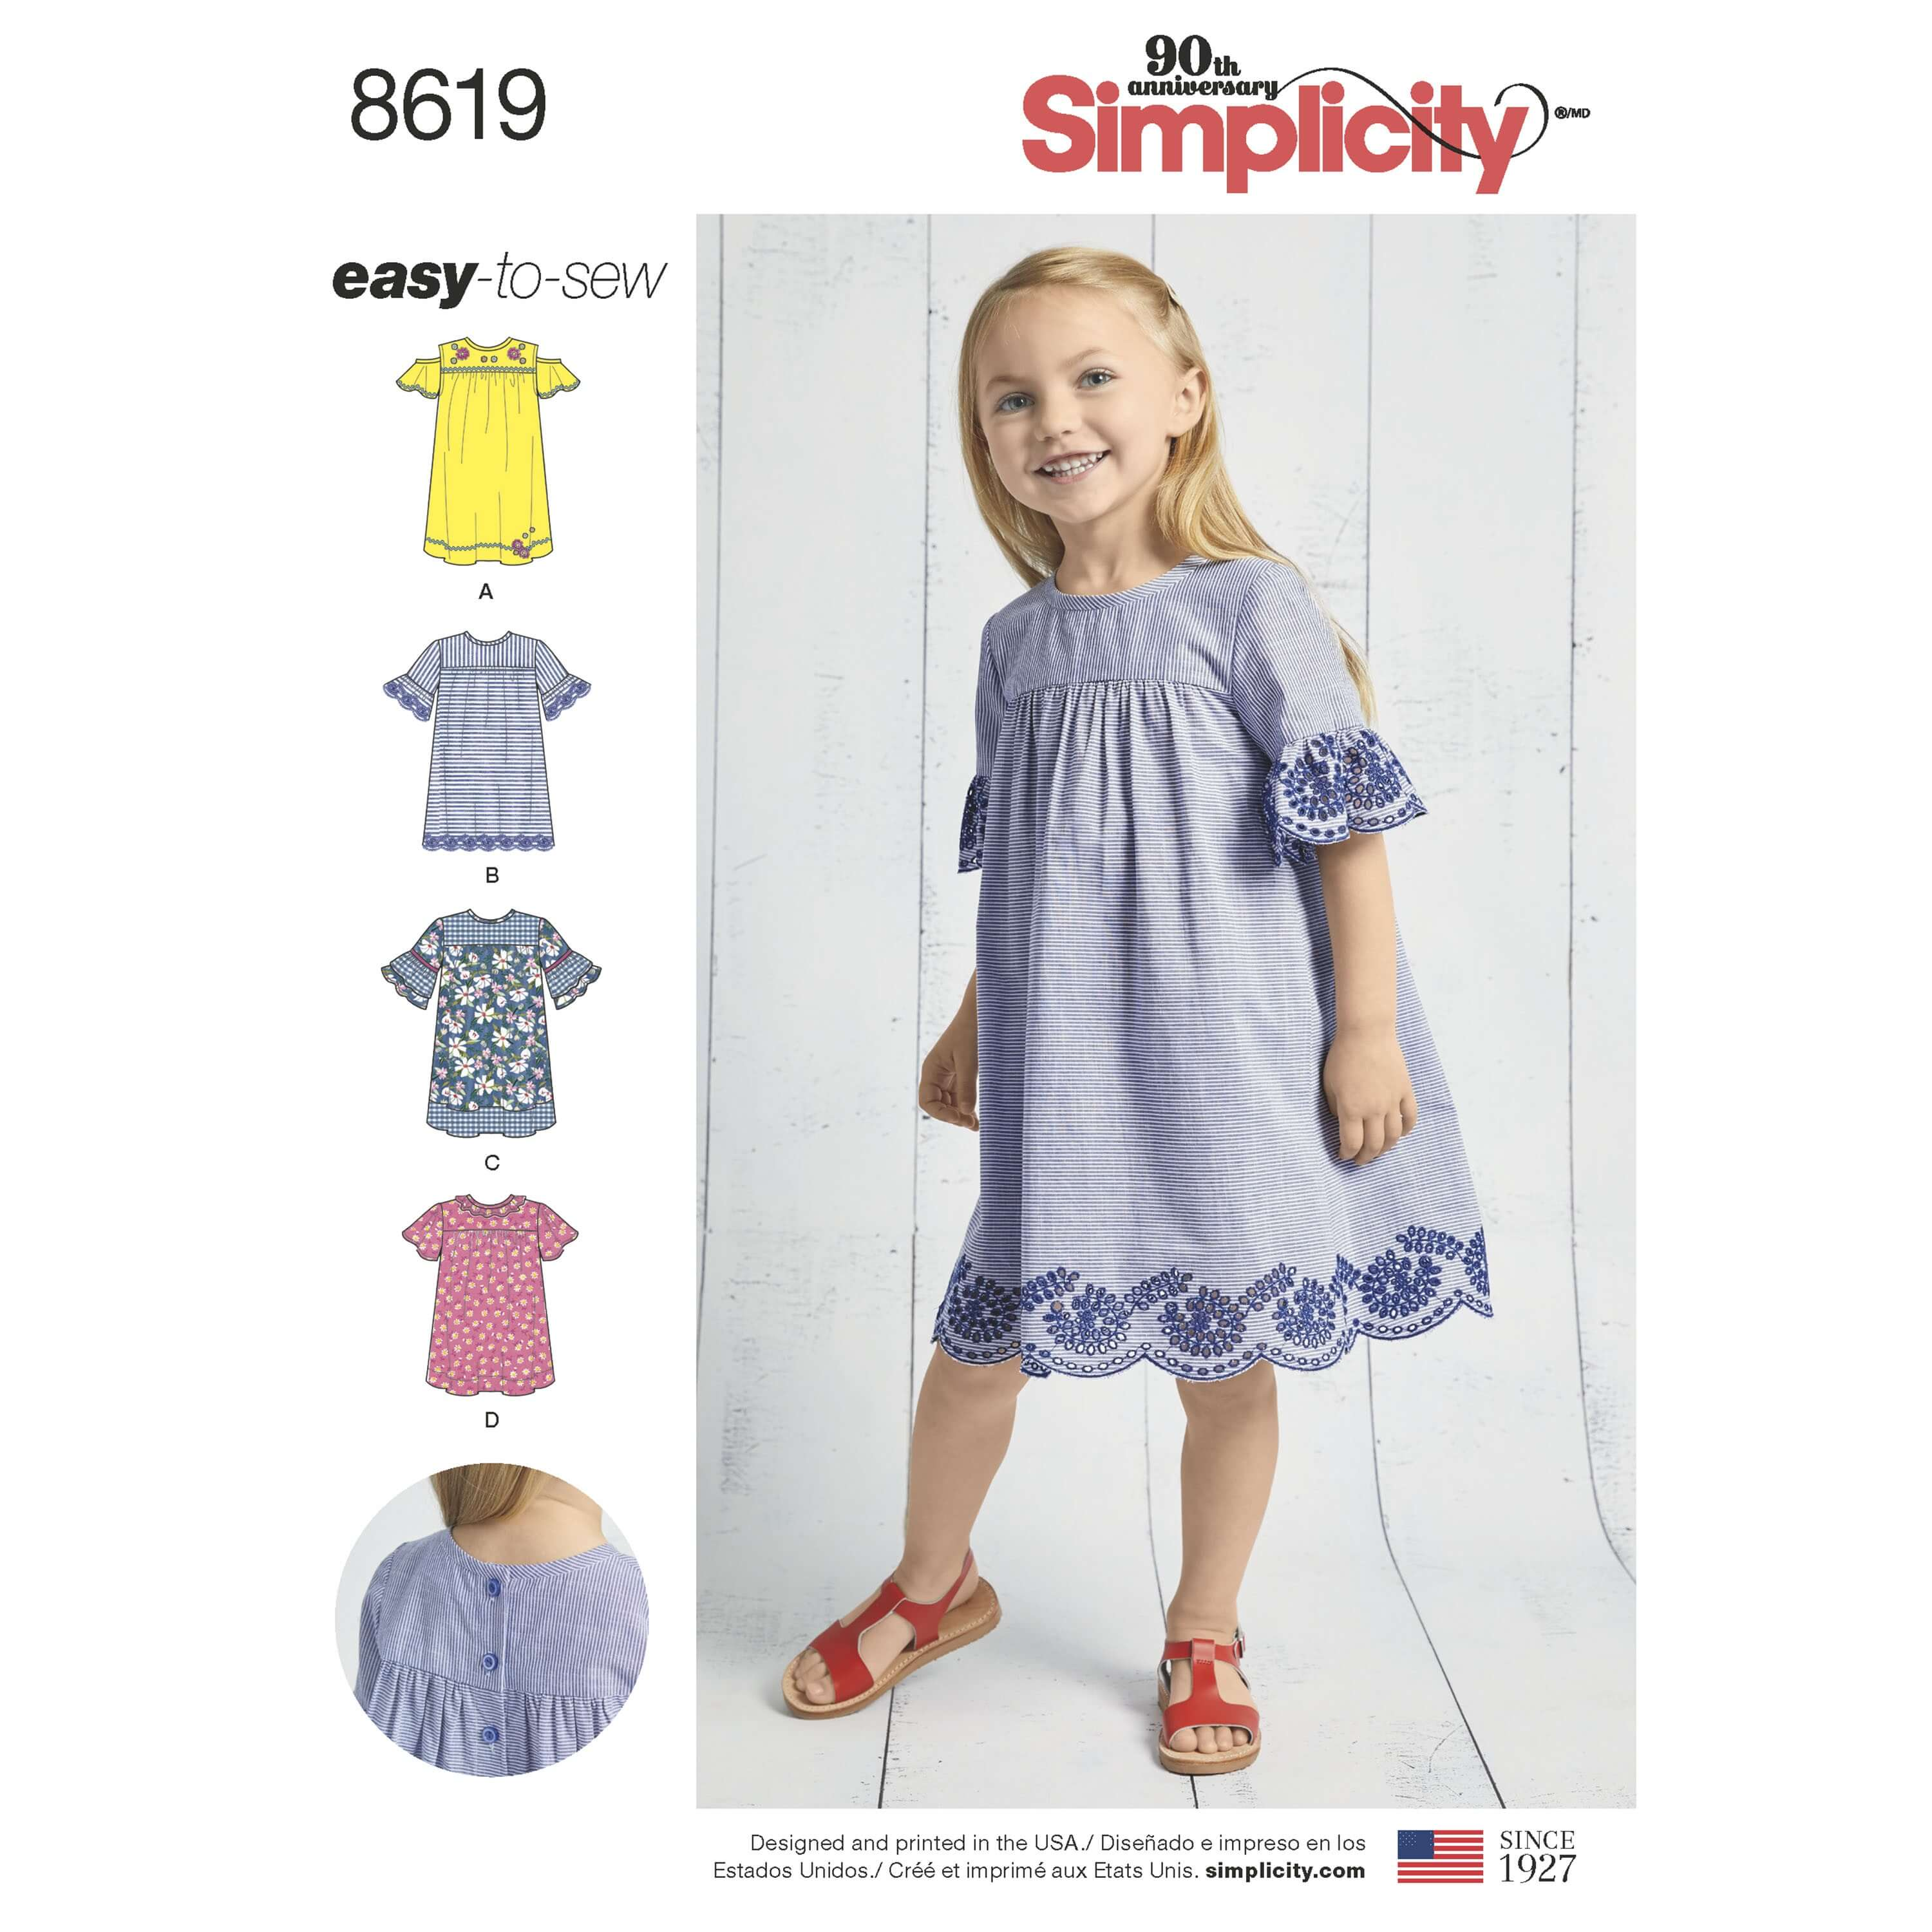 Simplicity Sewing Pattern 8619 Child's Easy to Sew Tunics and Dresses